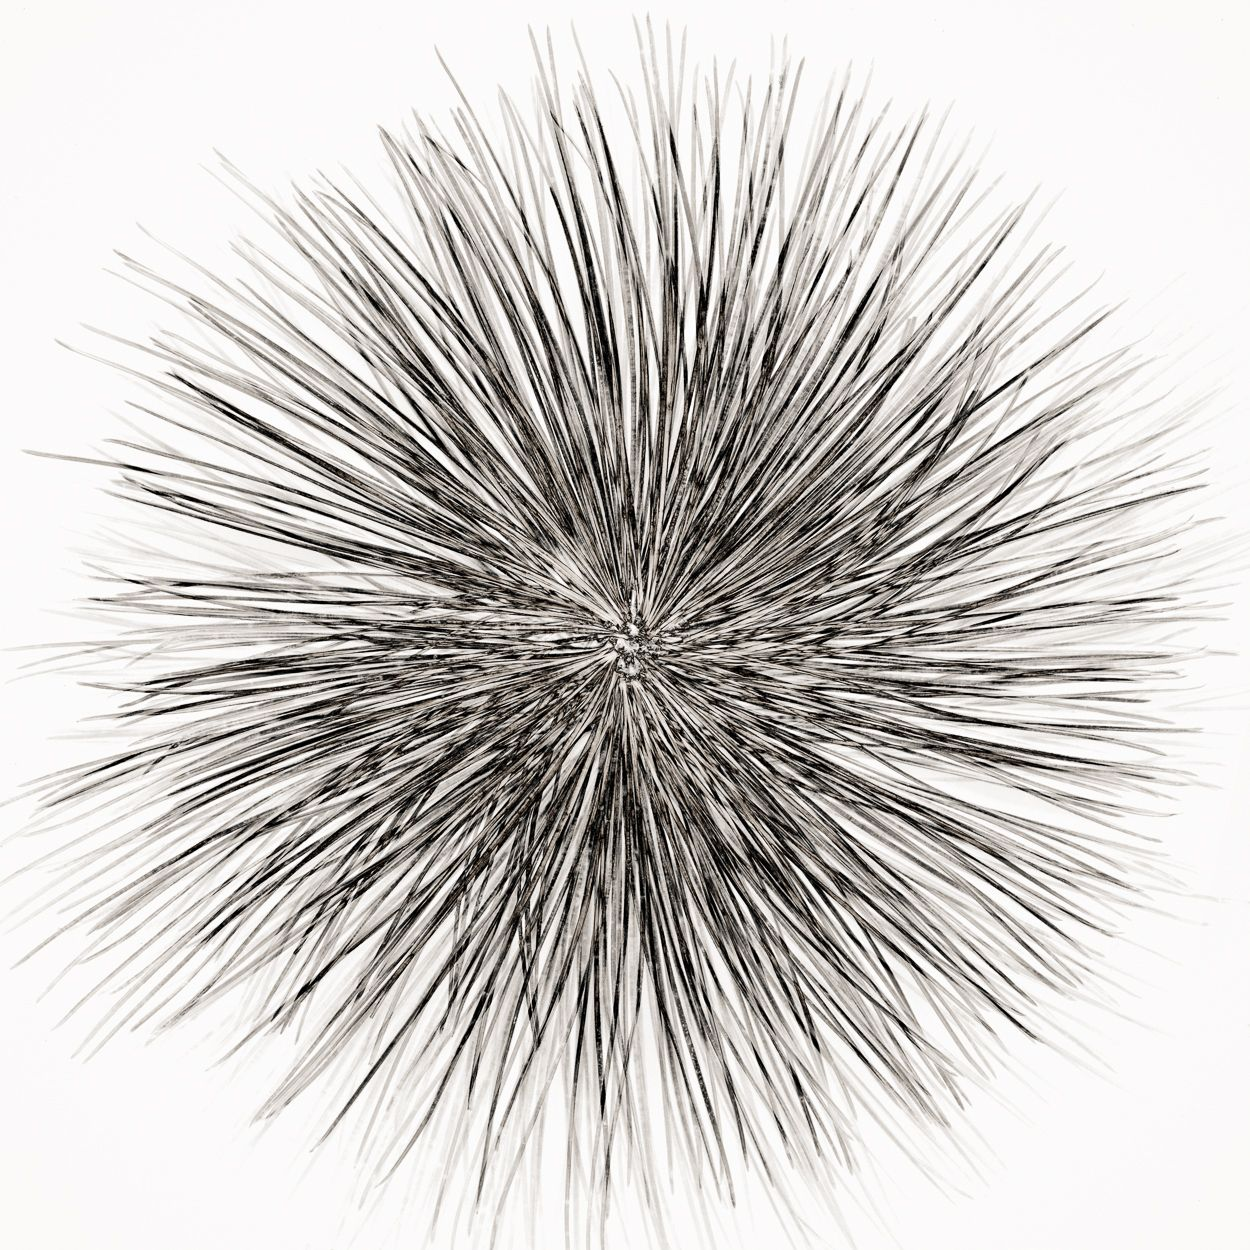 Pine Needles (2009) by Jeffrey Conley